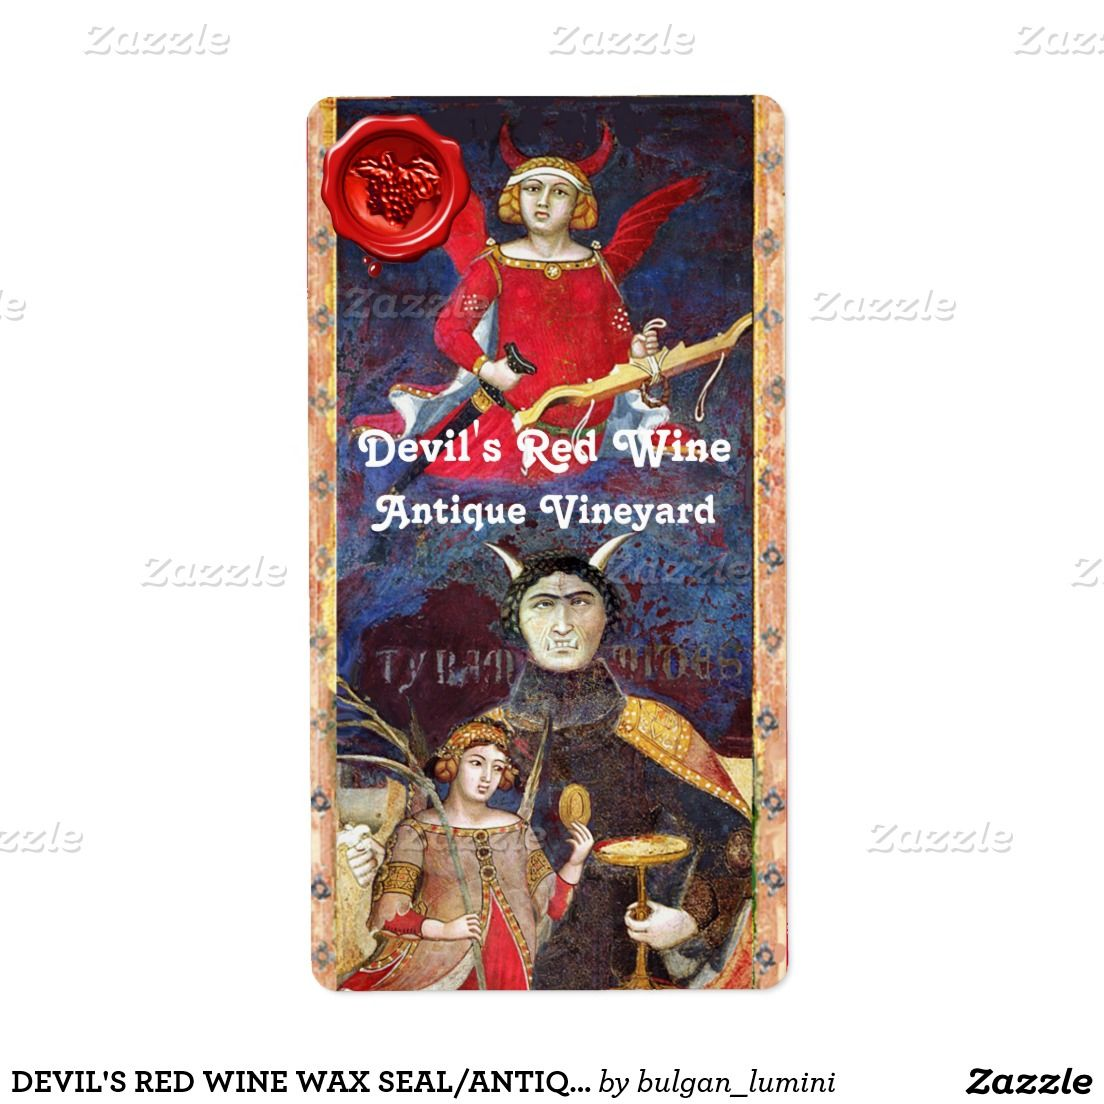 DEVIL'S RED WINE WAX SEAL/ANTIQUE TAROTS SHIPPING LABEL